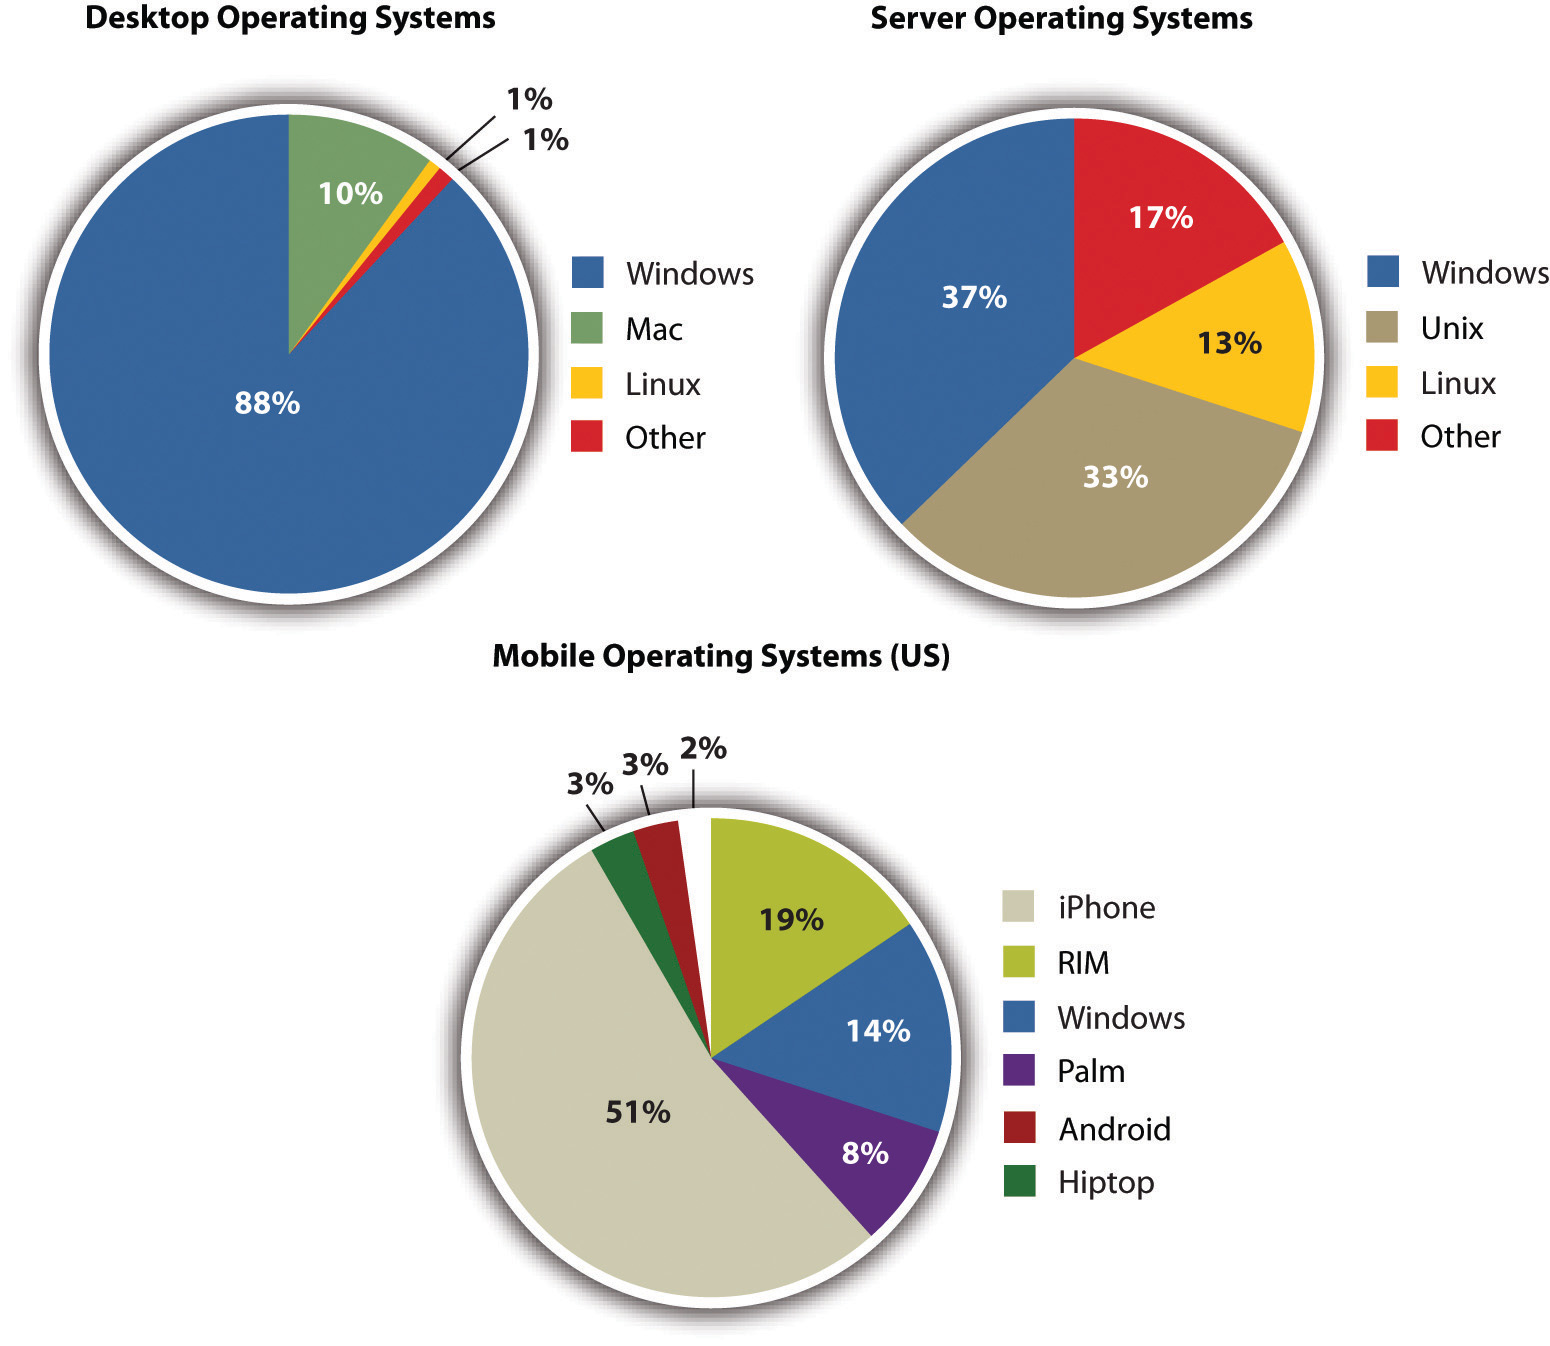 Windows dominates desktop operating systems, where as windows barely beats out unix in server operating systems. As far as mobile operating systems, the iPhone beats competition vastly with 51%.